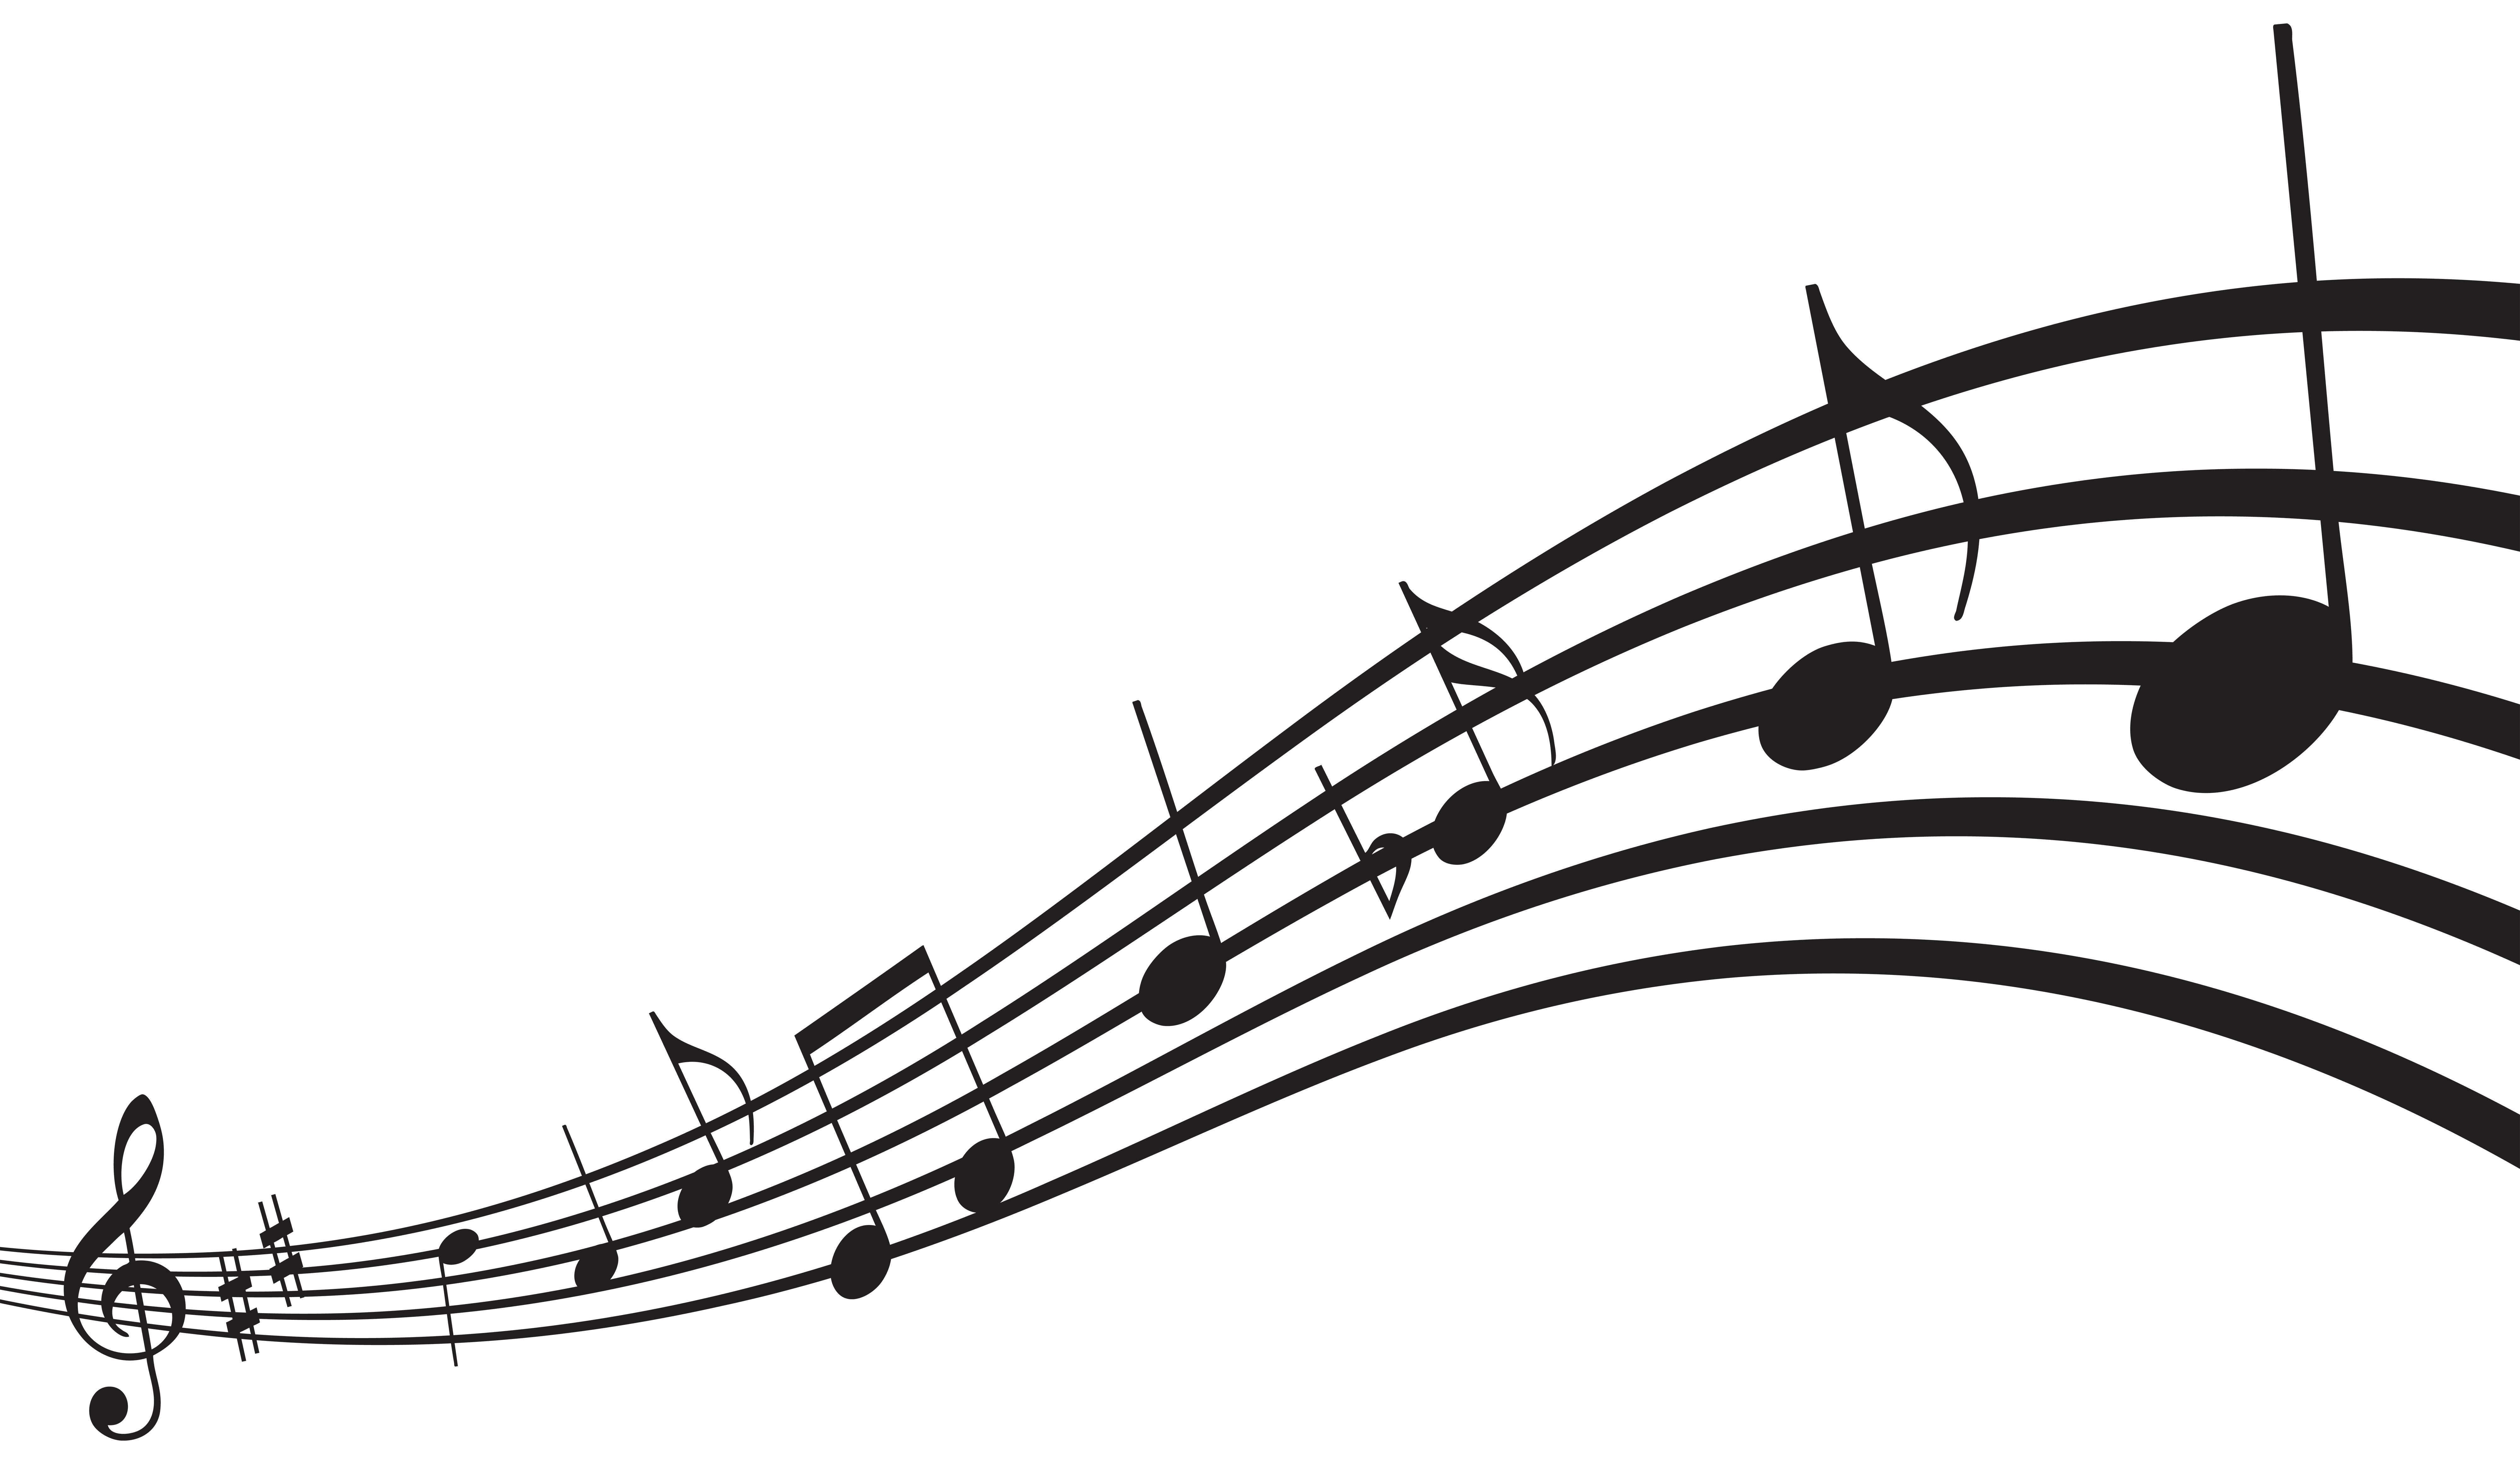 Music Notes PNG Clip Art Image.